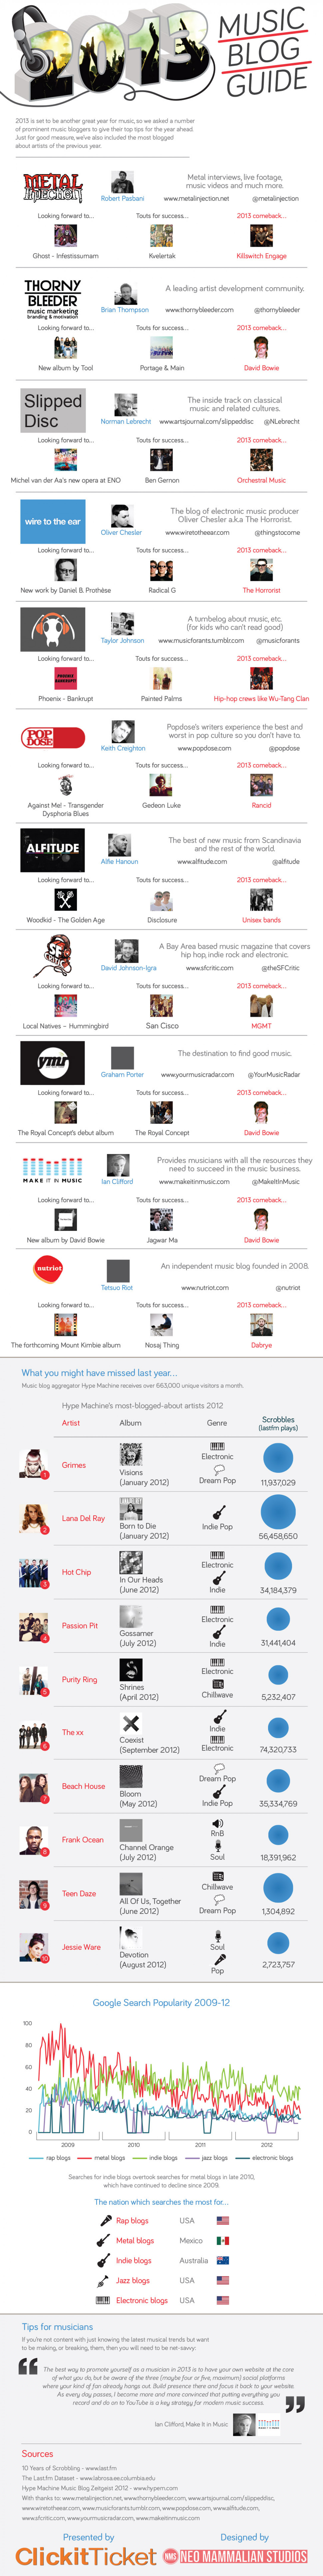 2013 Music Blog Guide [Infographic] Infographic